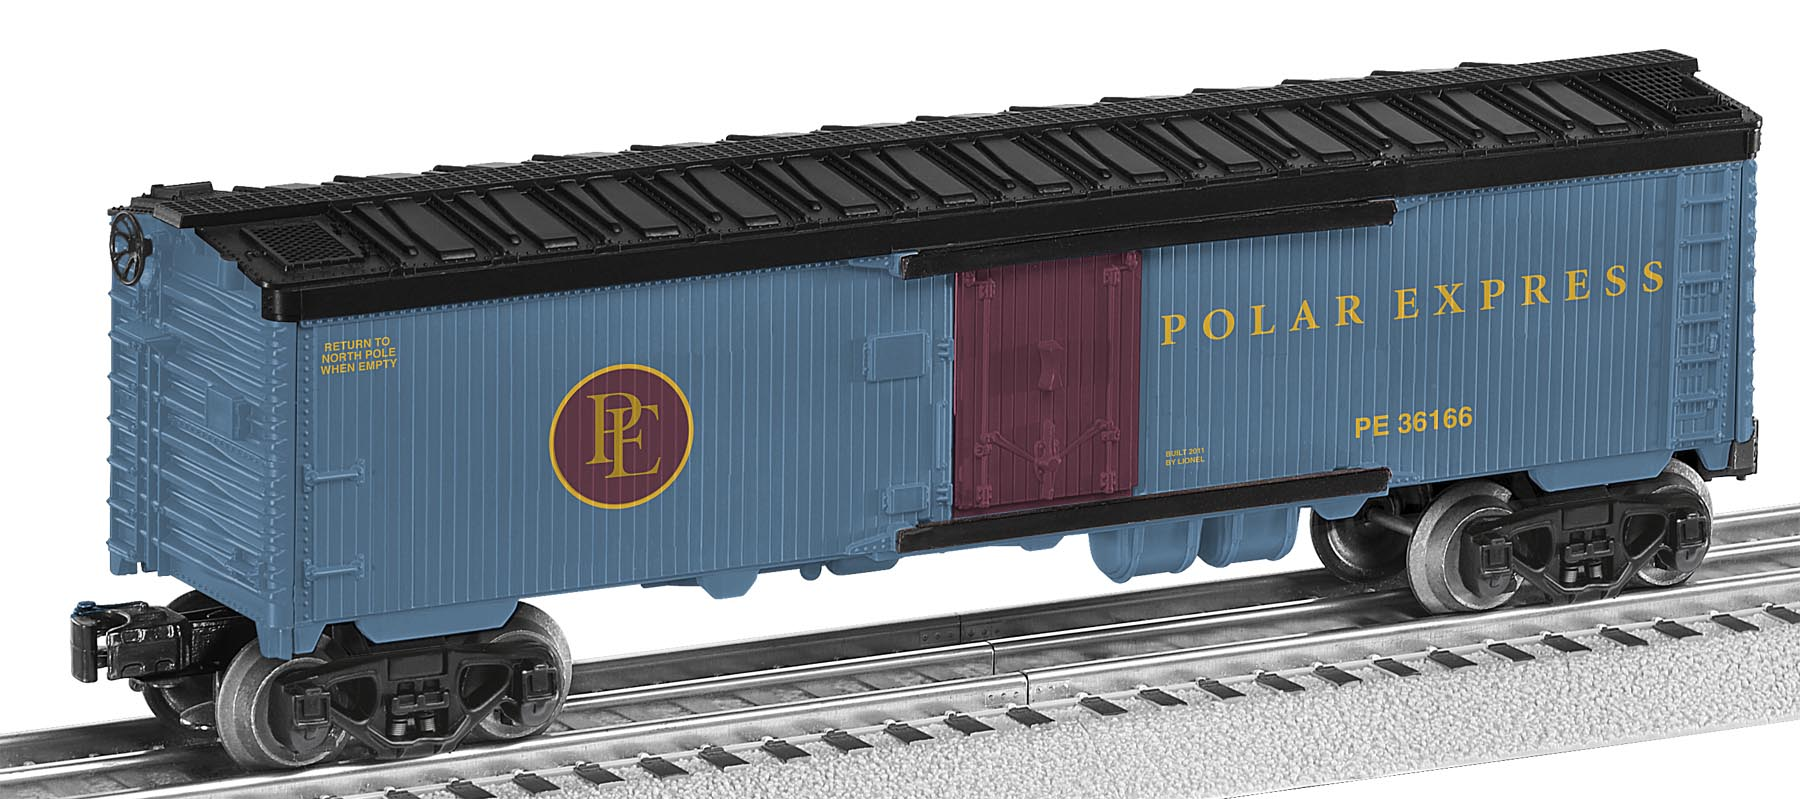 Polar express lionel trains